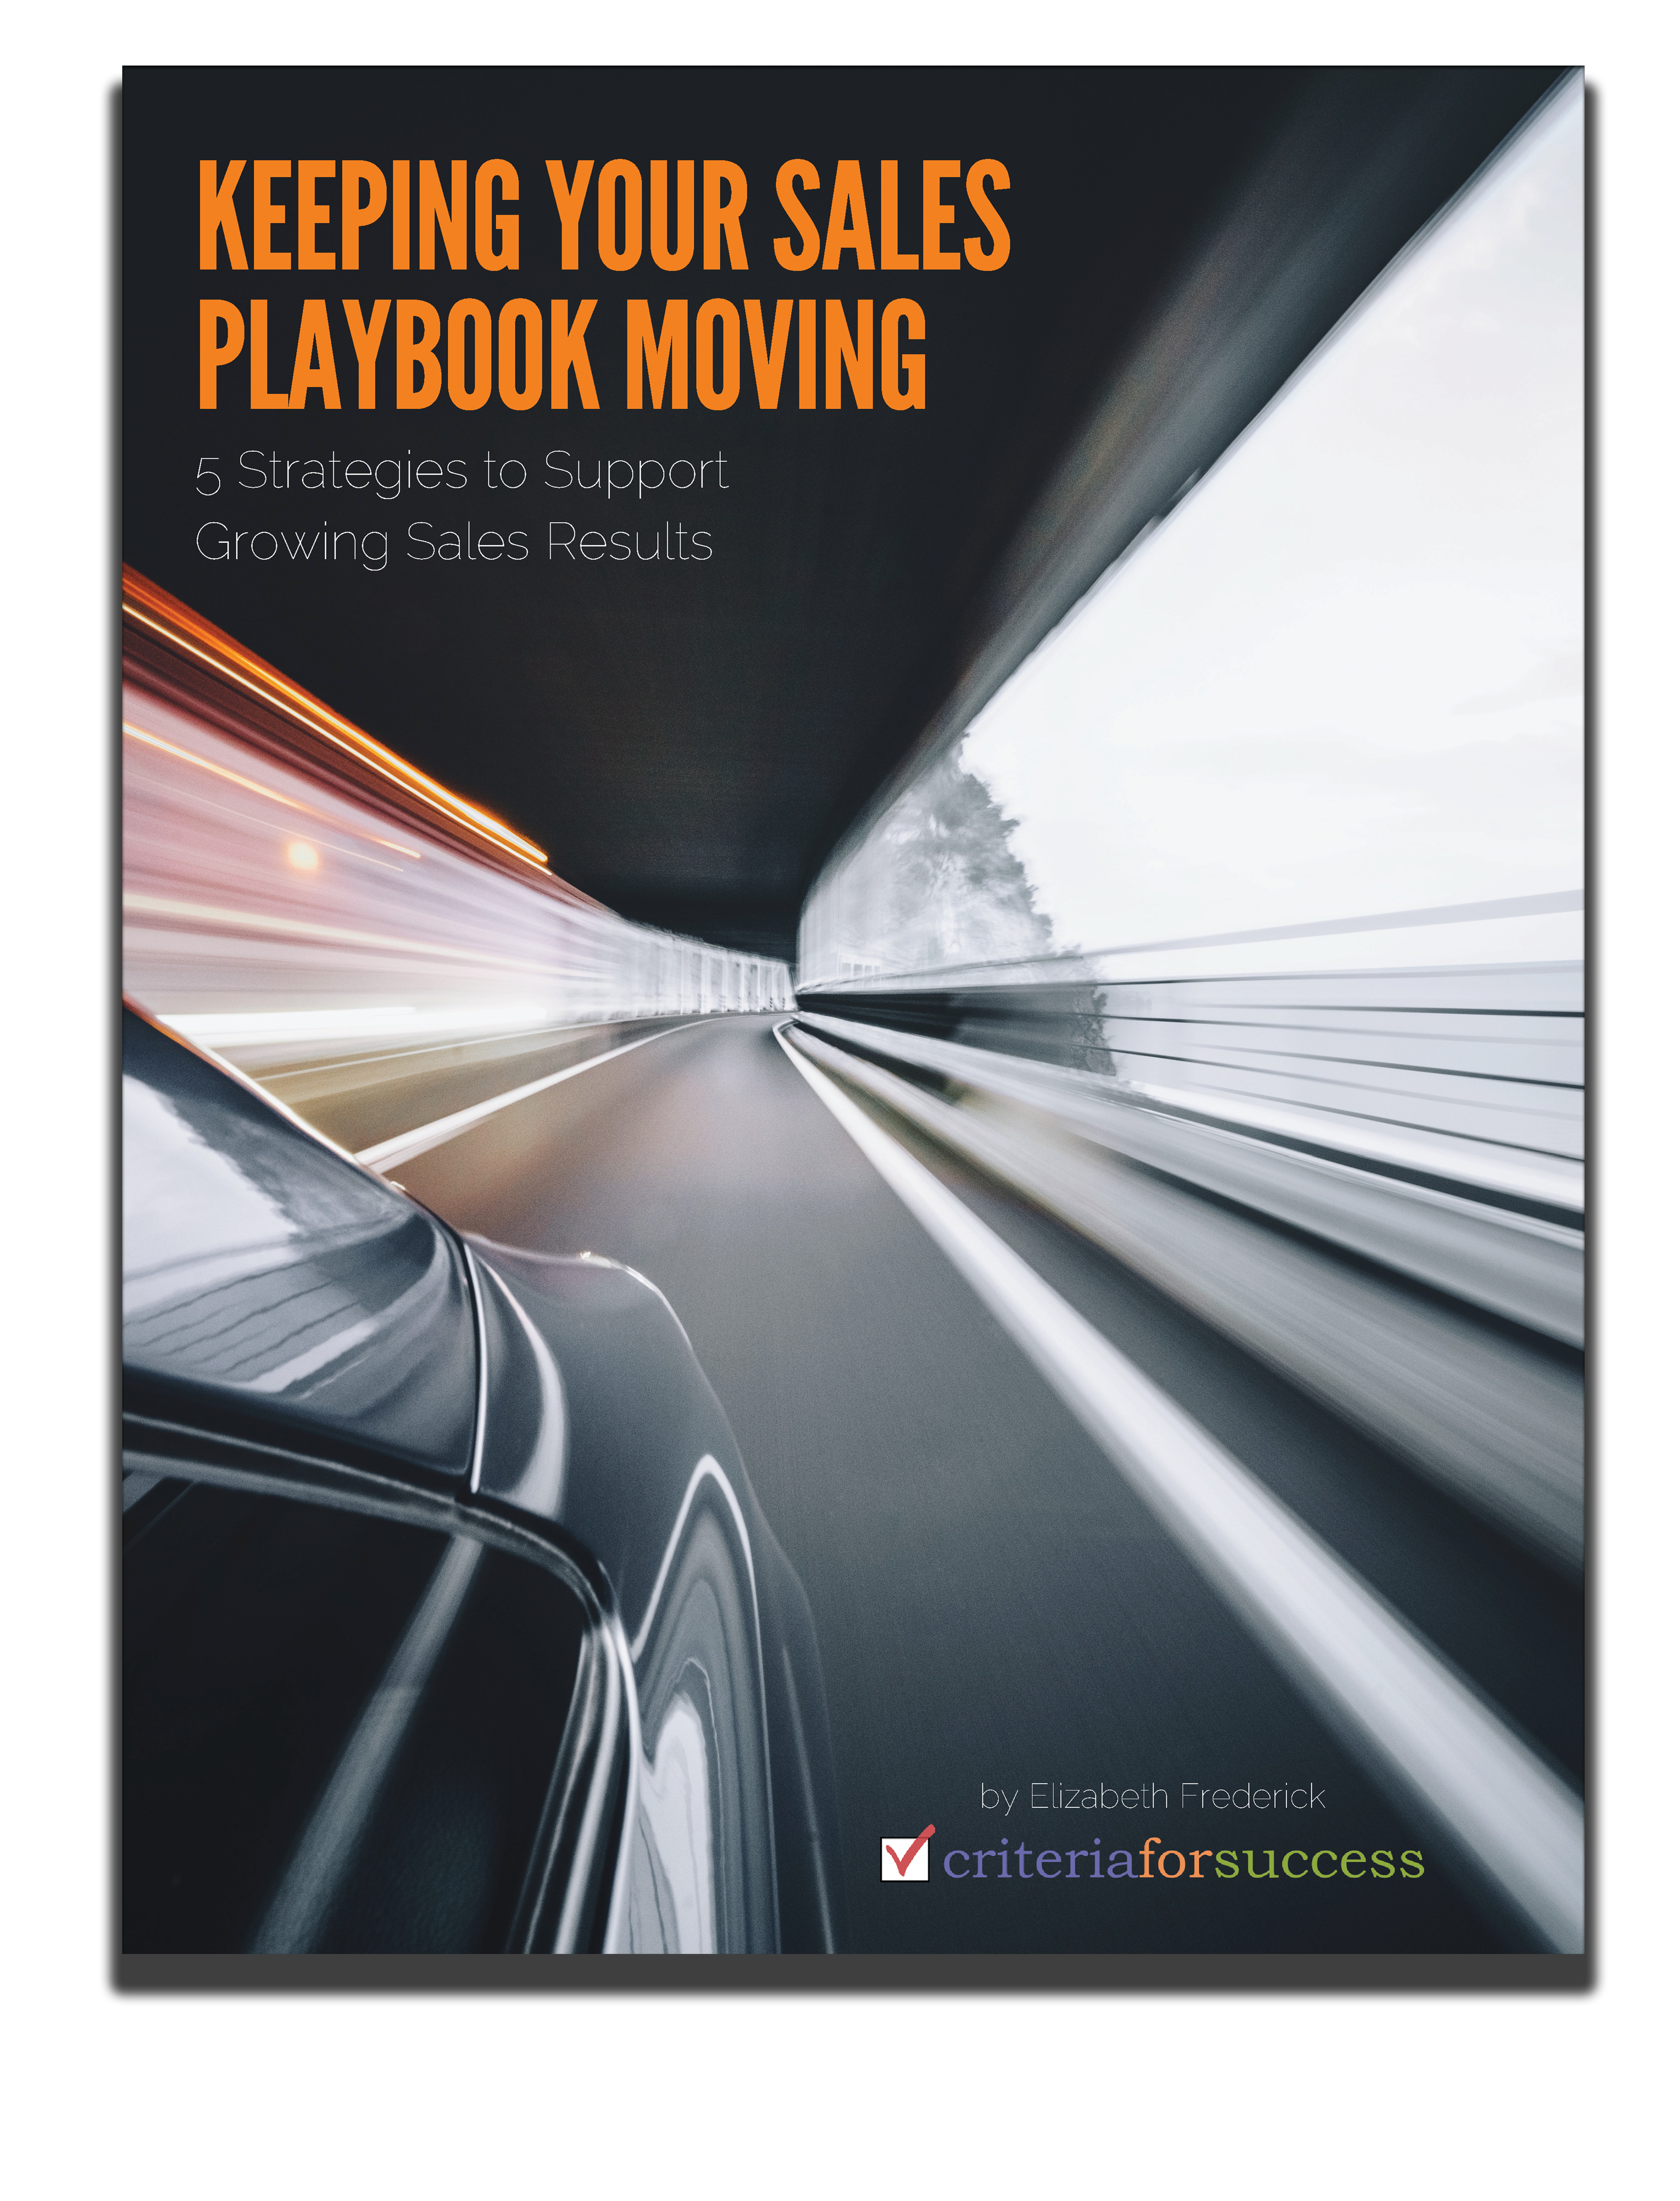 Cover-Sales-PlayBook-Maintenance-shadow.png